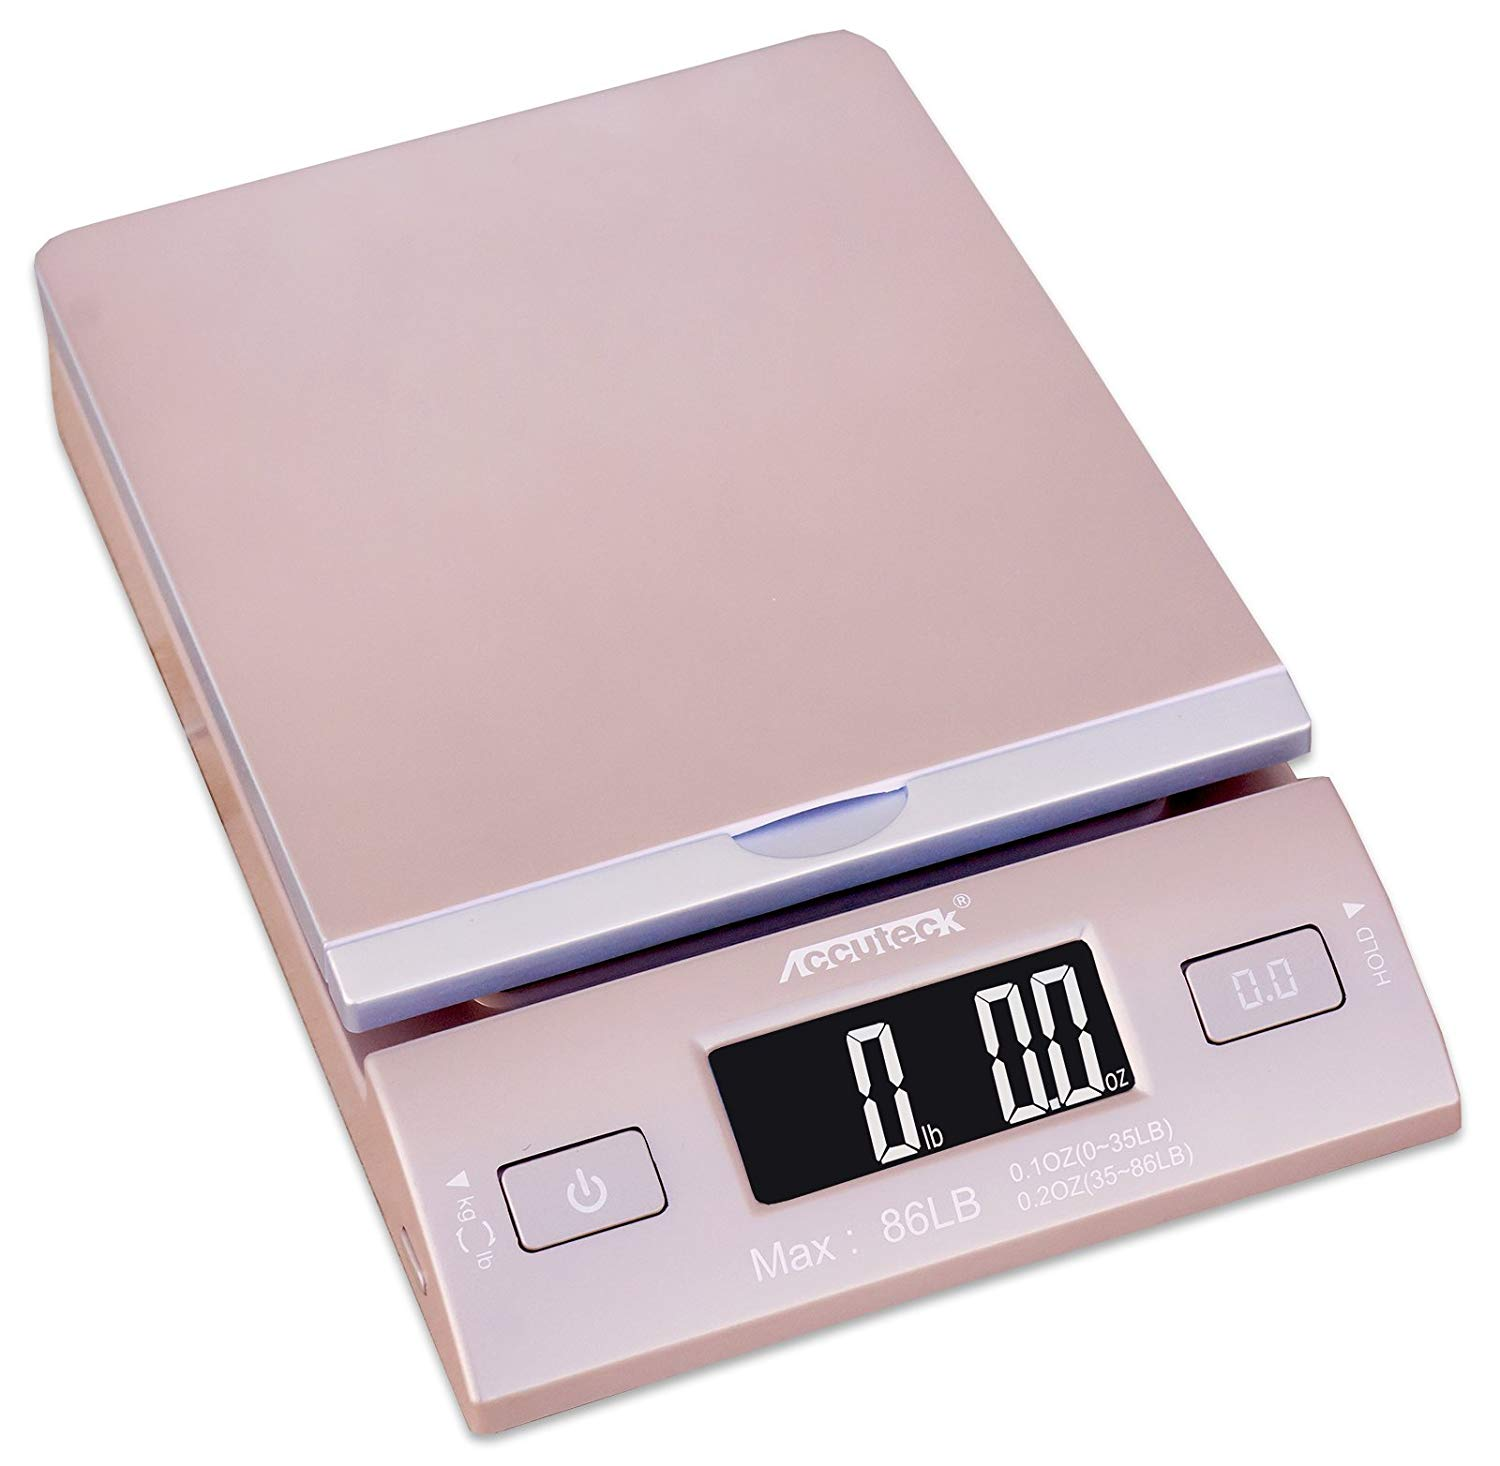 ACCUTECK DreamGold 86 Lbs Digital Postal Scale